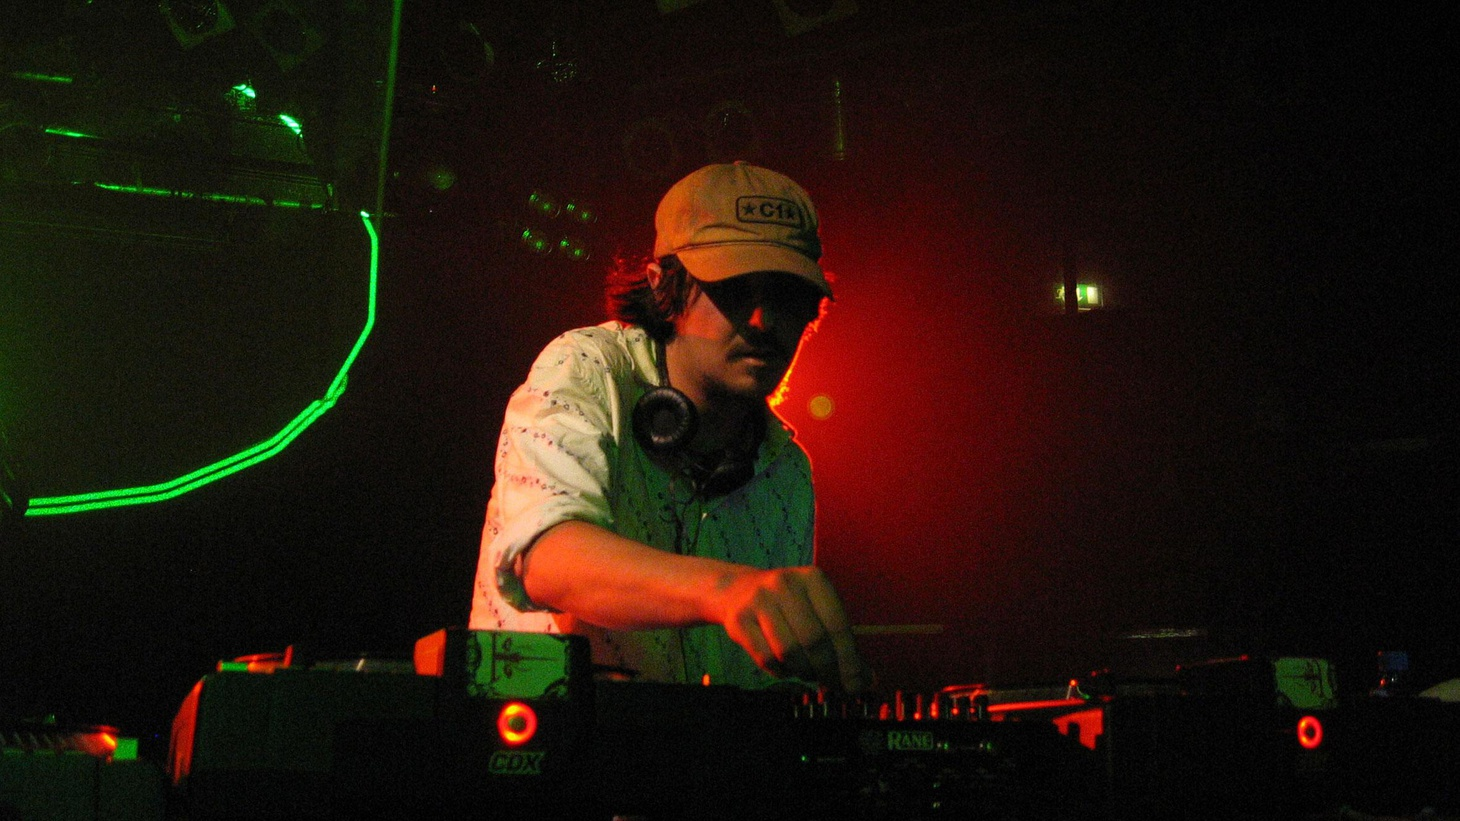 Producer Amon Tobin is at the top of his game. He's a master sampler who crafts imaginative and complex electronic arrangements...